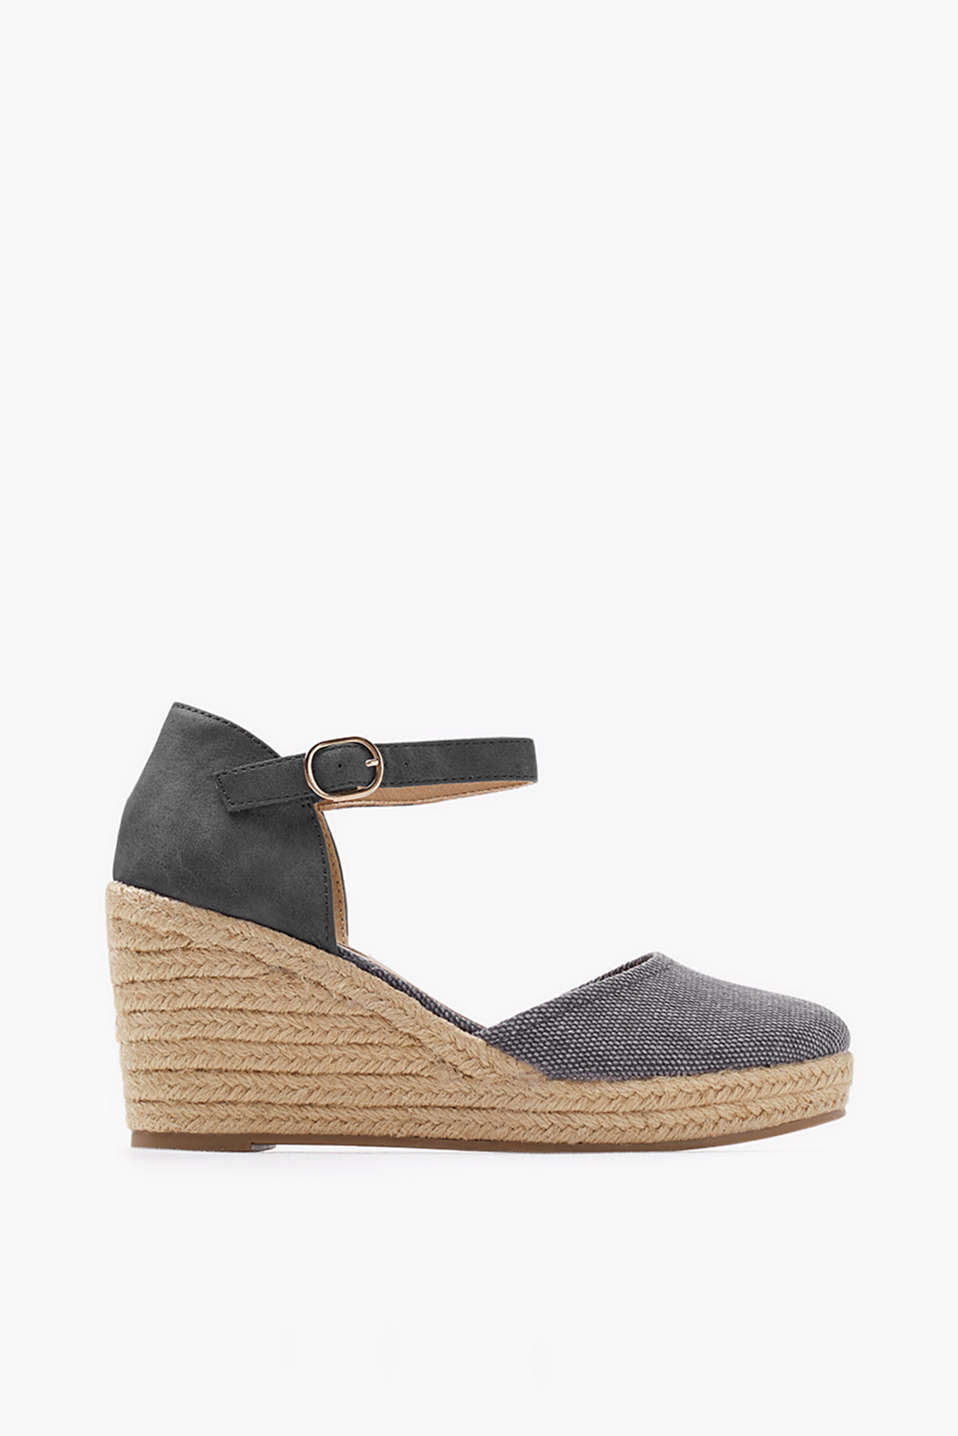 Wedges with a rubber-coated bast sole, closed heel and ankle straps